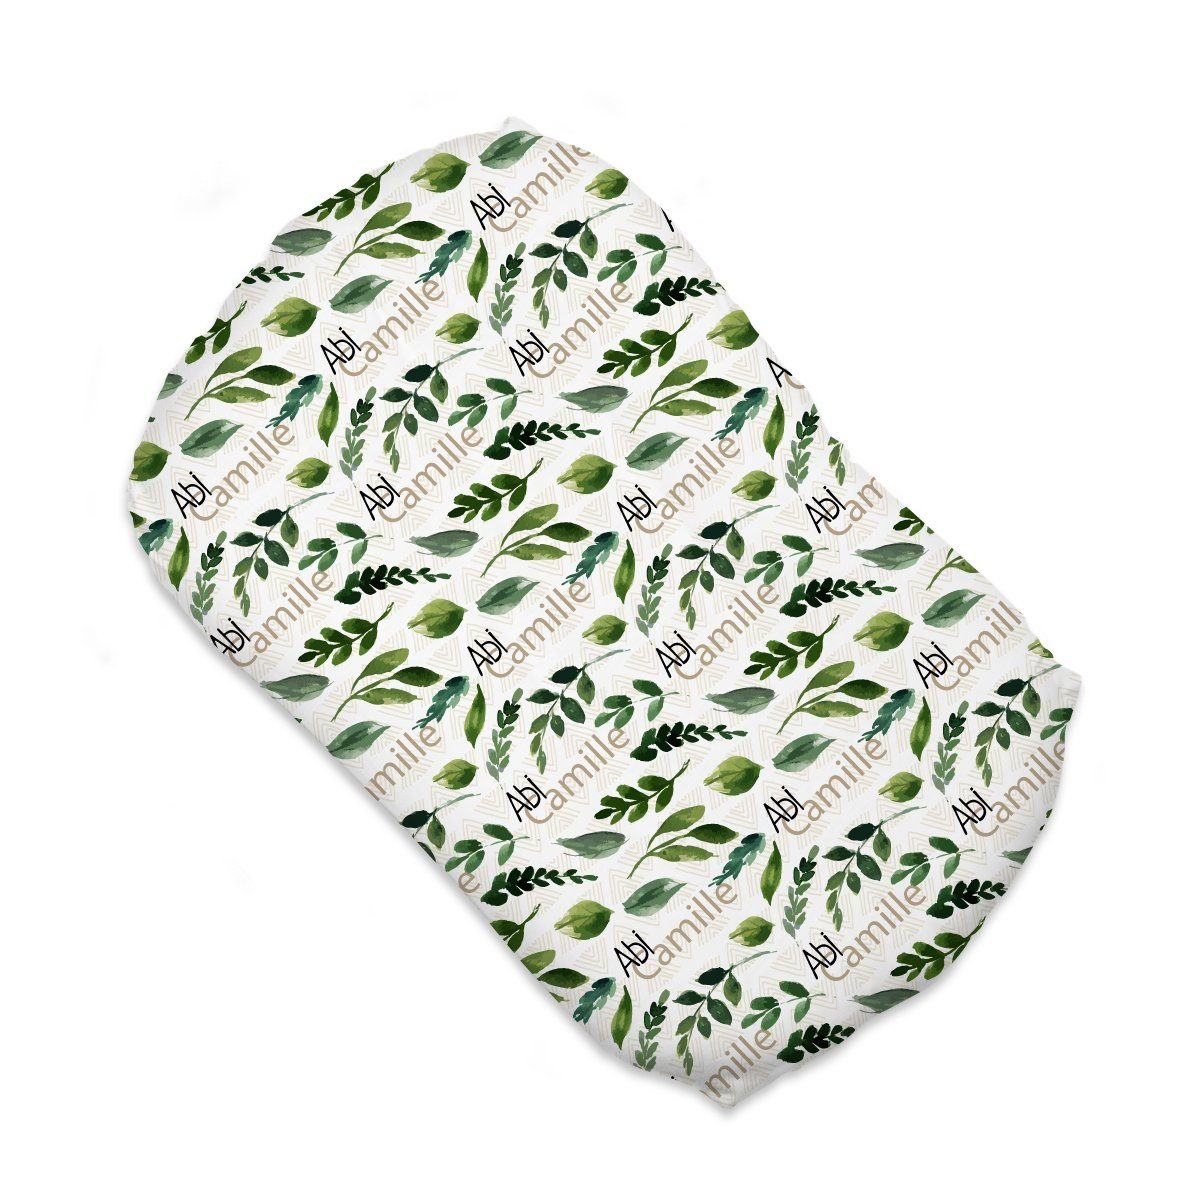 Abi's Sketchy Greenery | Sleep Nest Covers for SnuggleMe Organic™